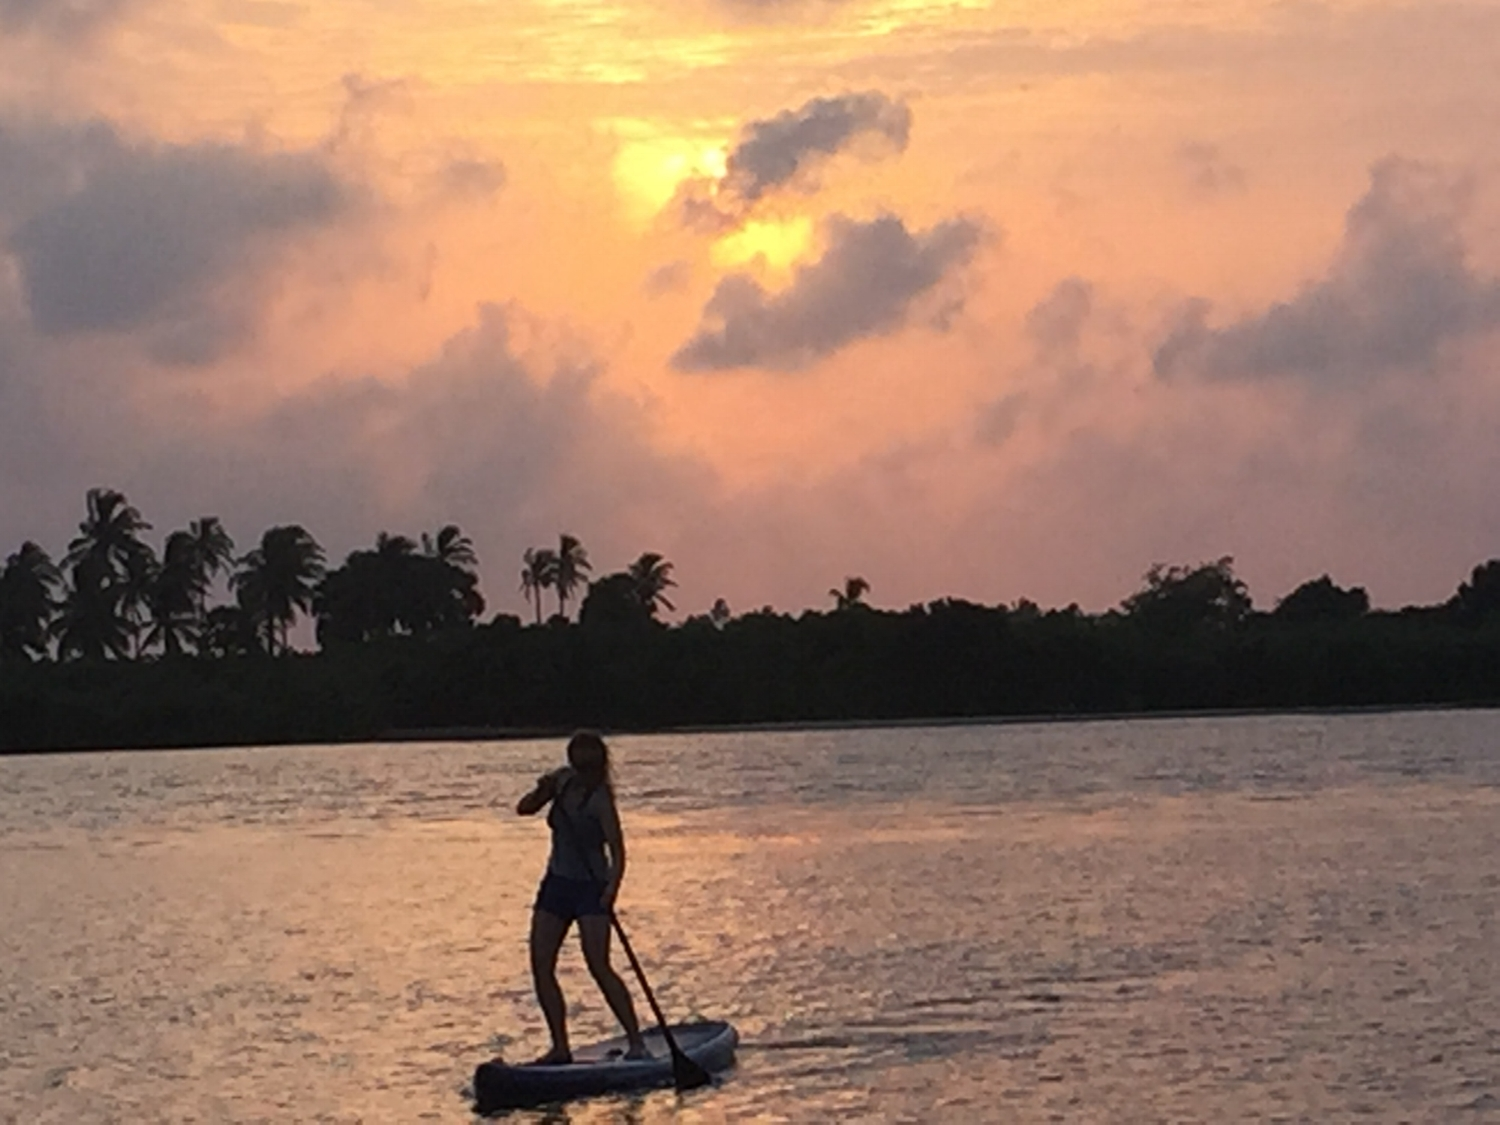 enjoy a SUP ride during the sunset